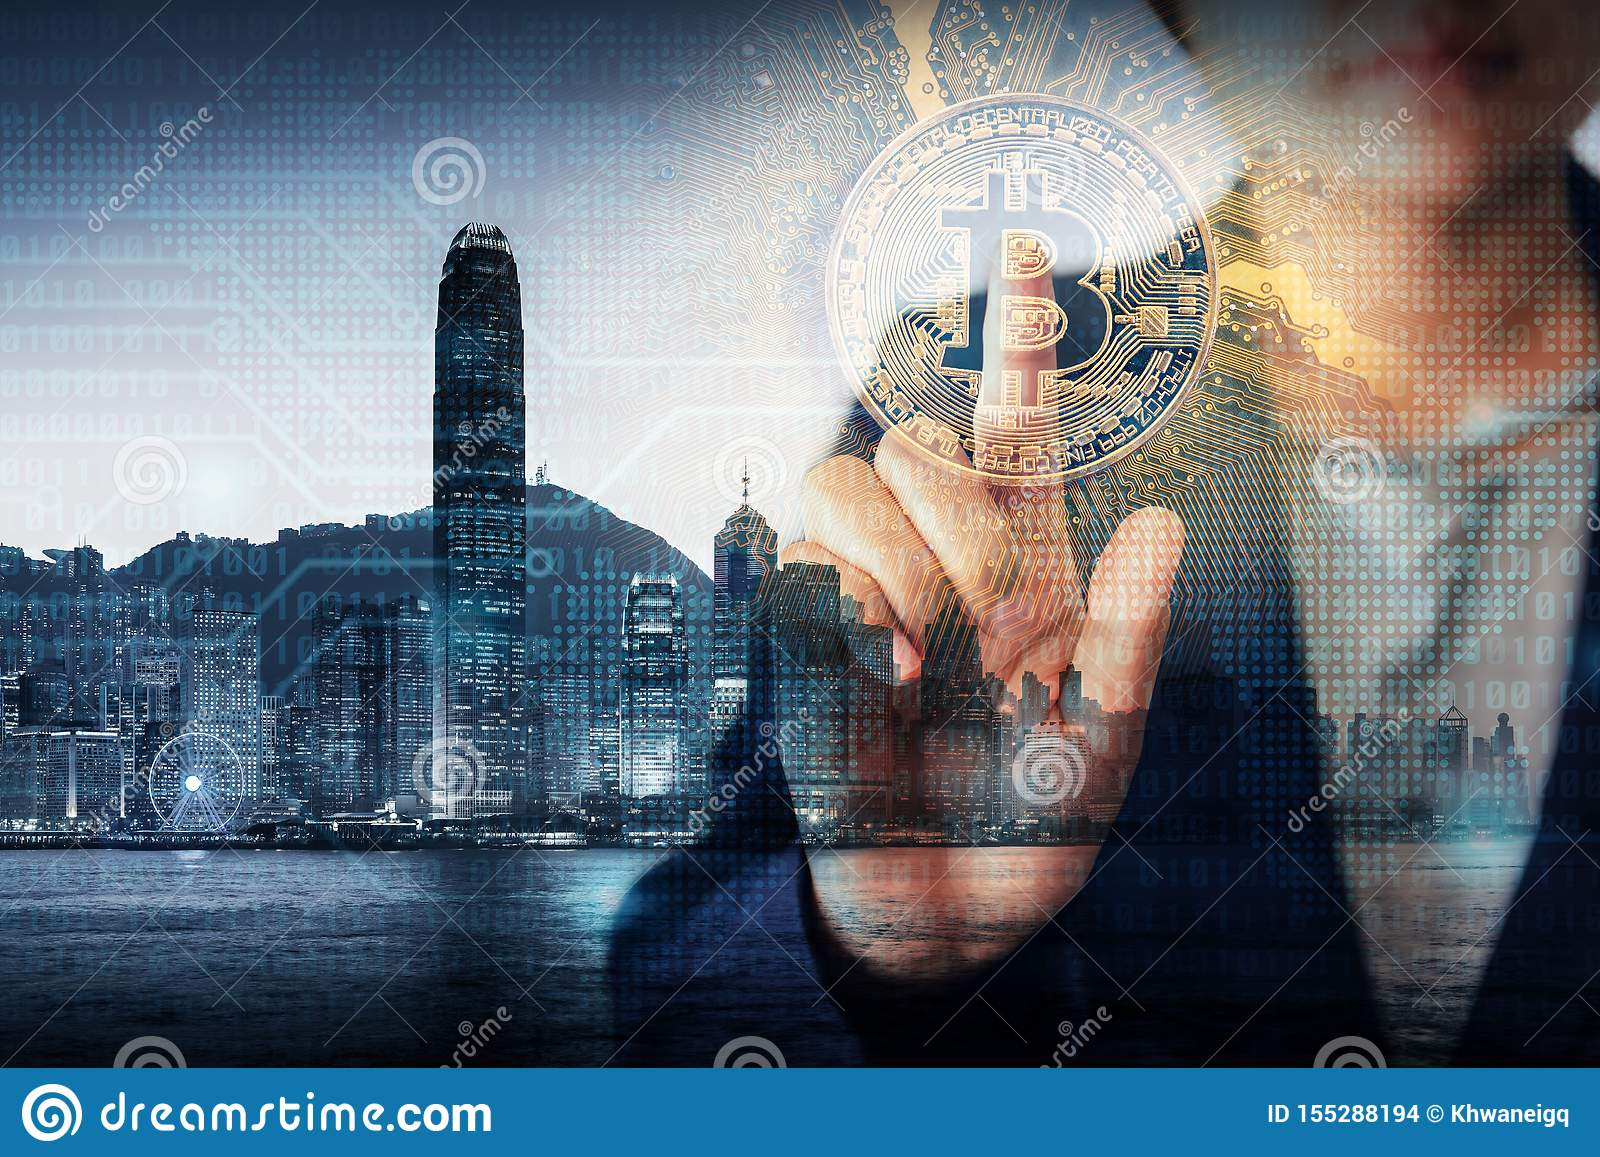 Double Exposure Business Finance and Technology Cryptocurrency Concept, Business Woman Hand is Pressing Bitcoin With Hong Kong